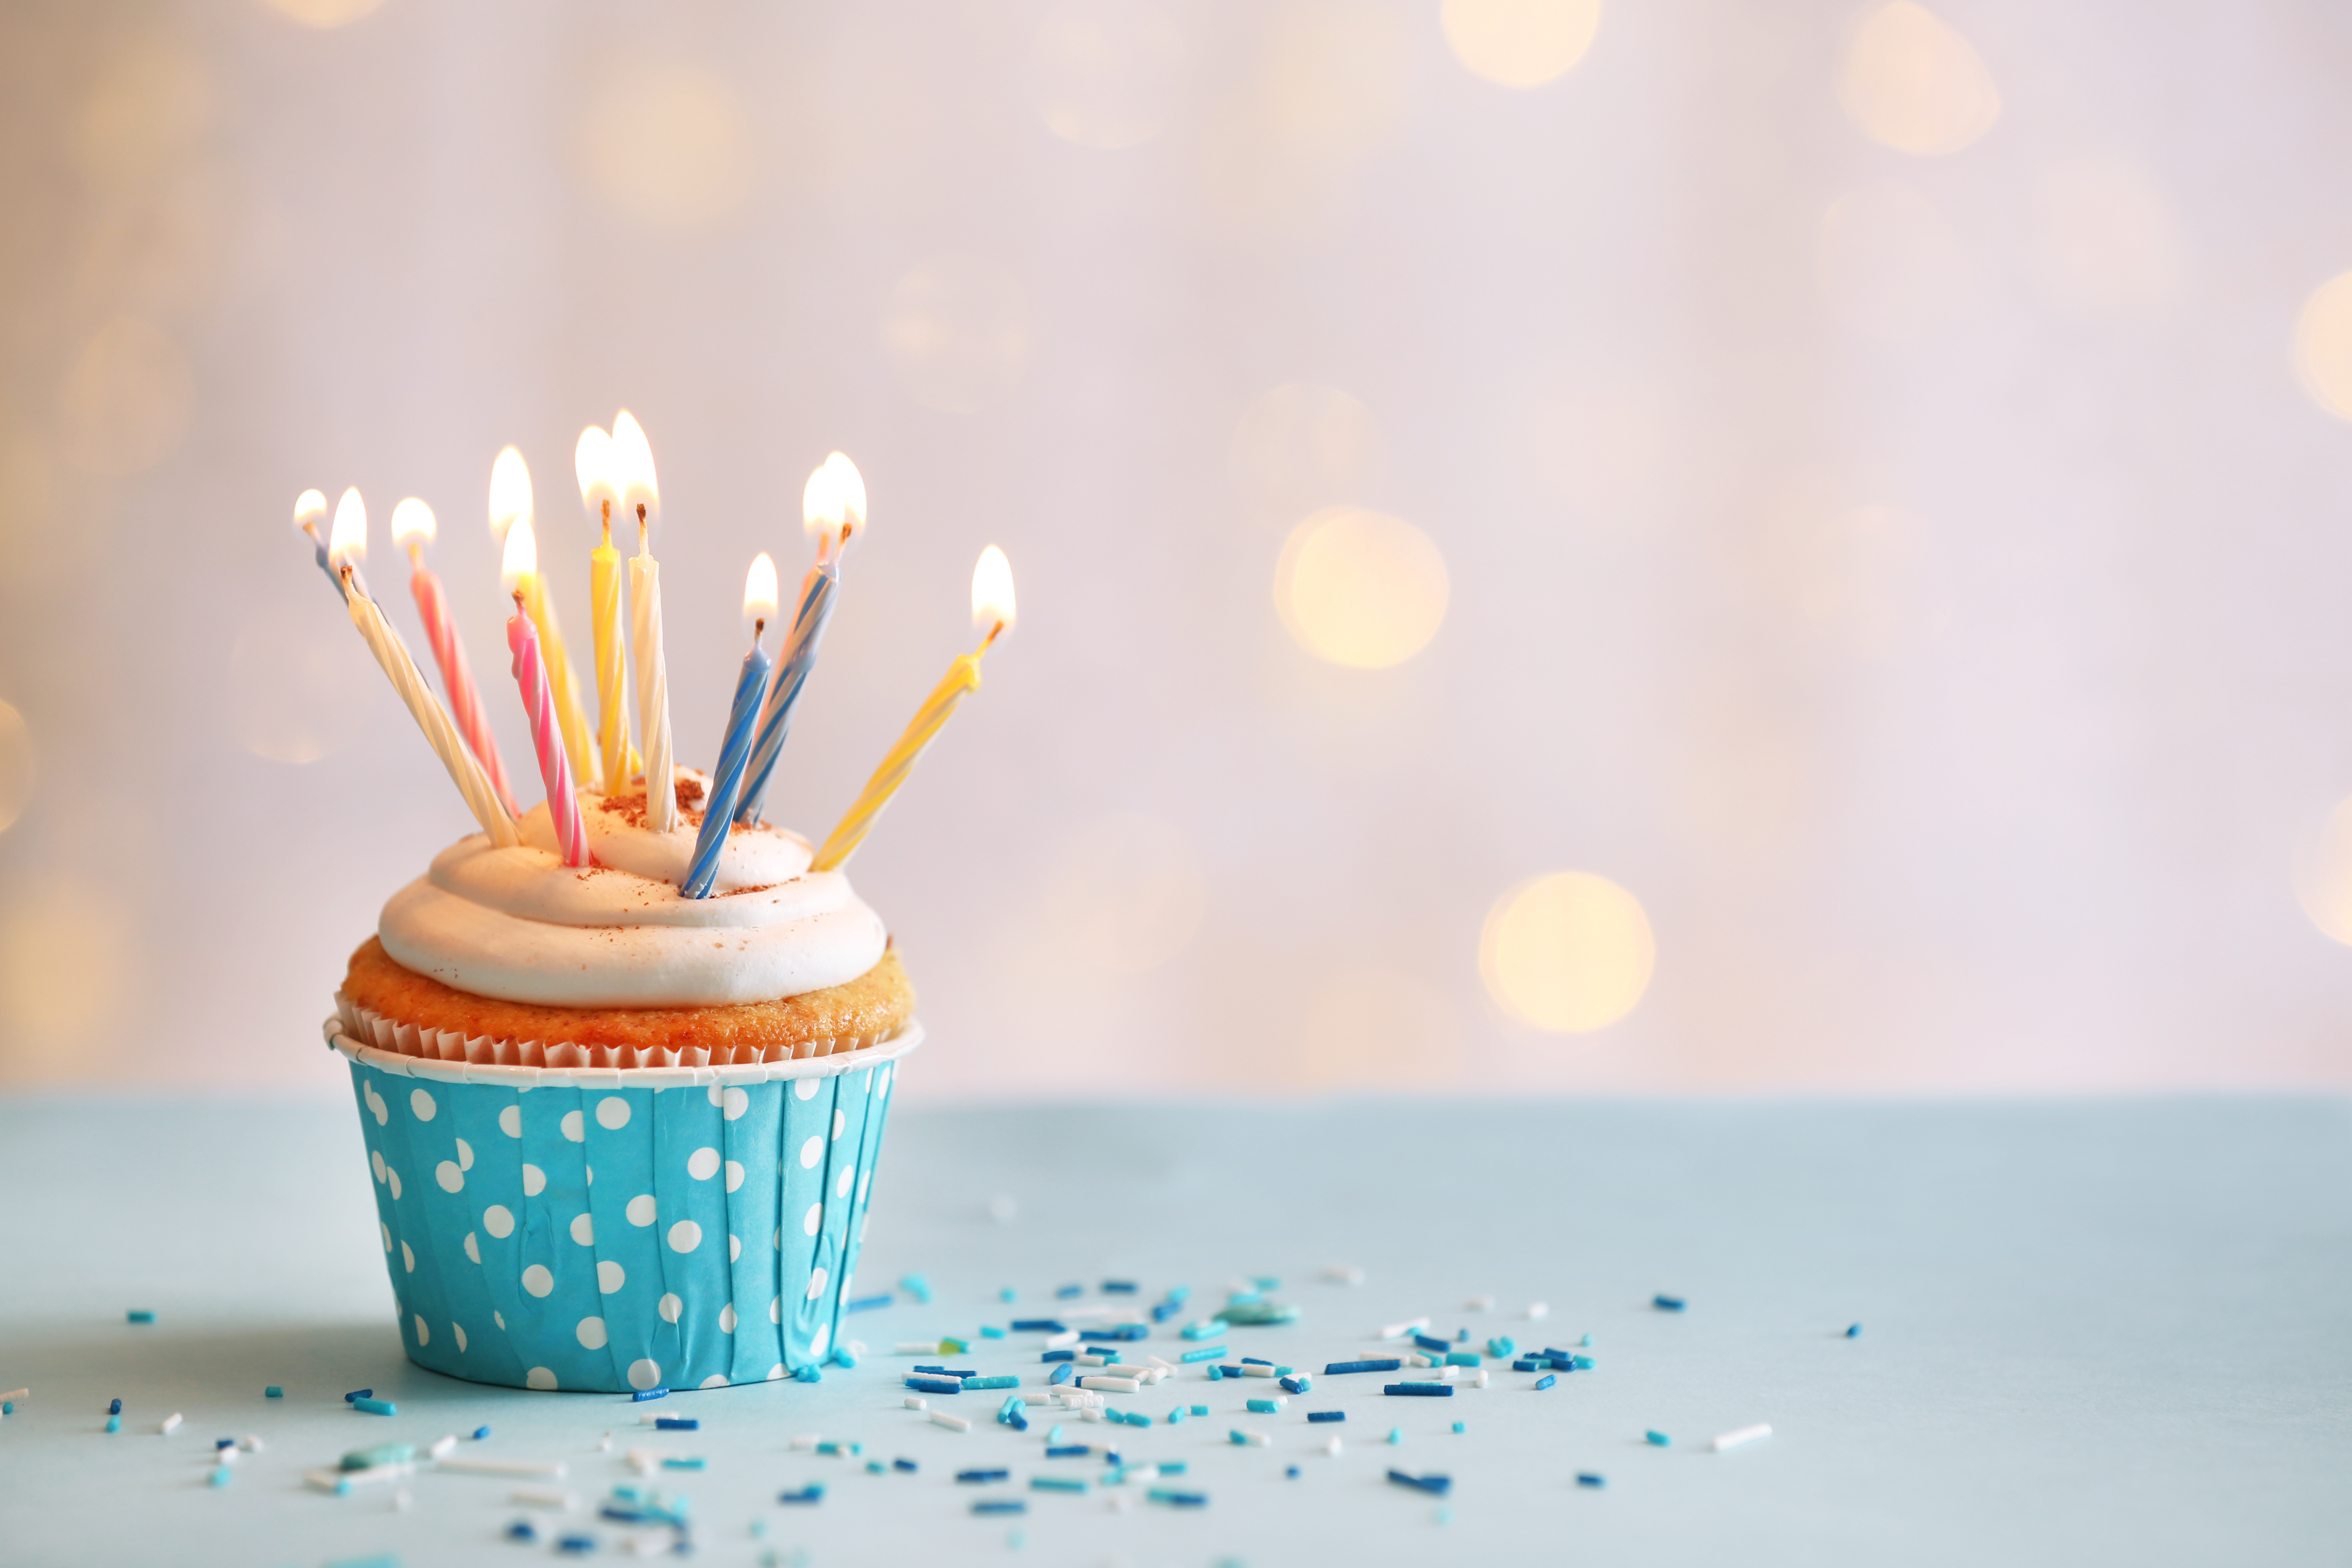 delicious birthday cupcake on table on light background matchmaker logistics https matchmakerlogistics com delicious birthday cupcake on table on light background